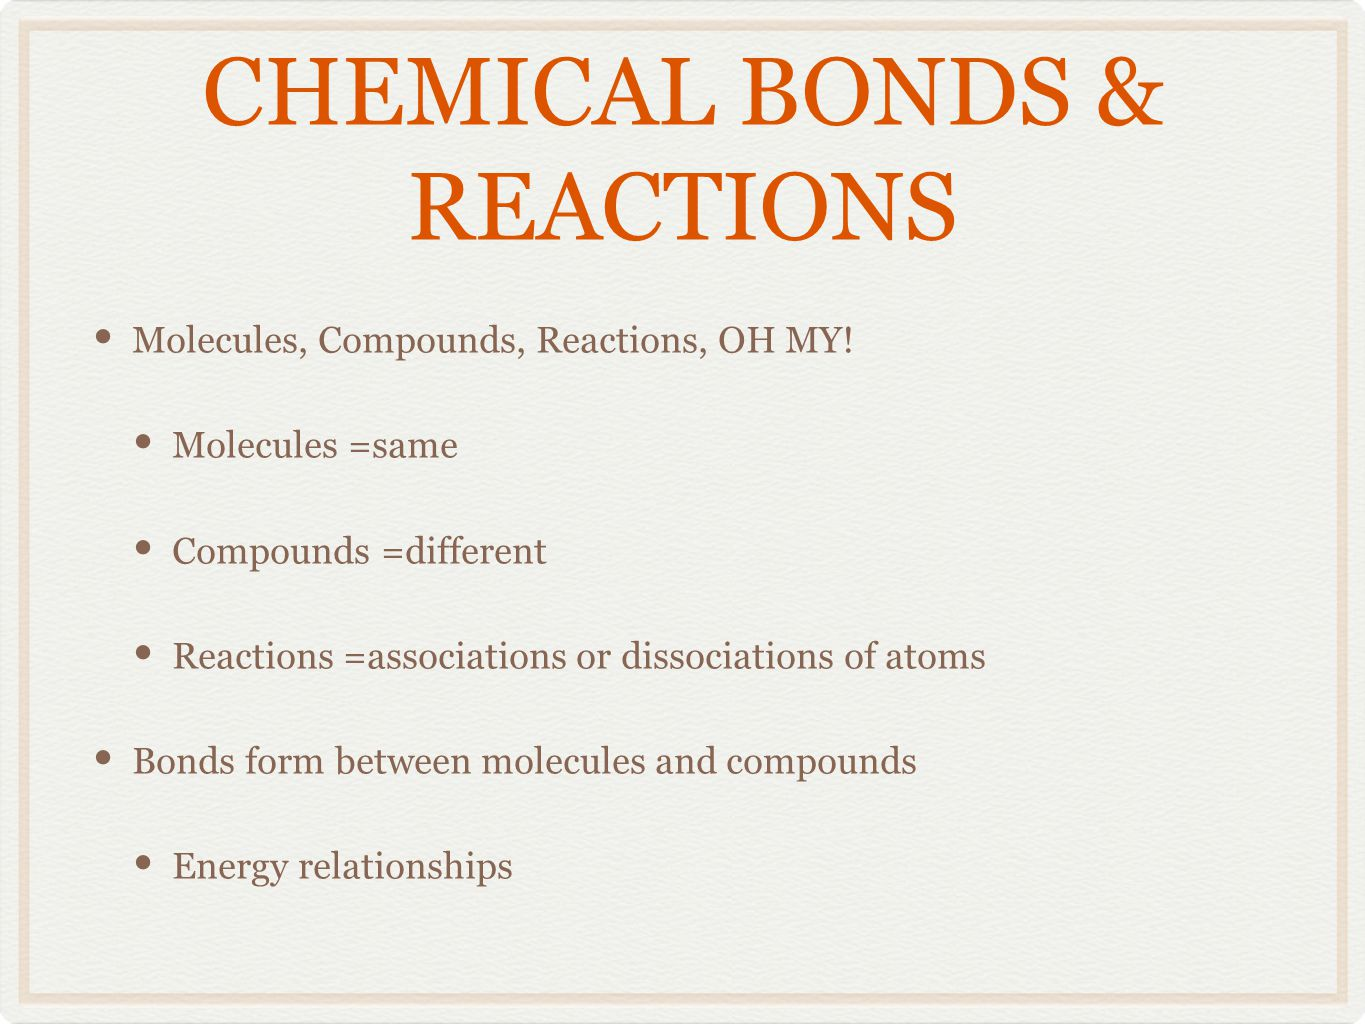 CHEMICAL BONDS & REACTIONS